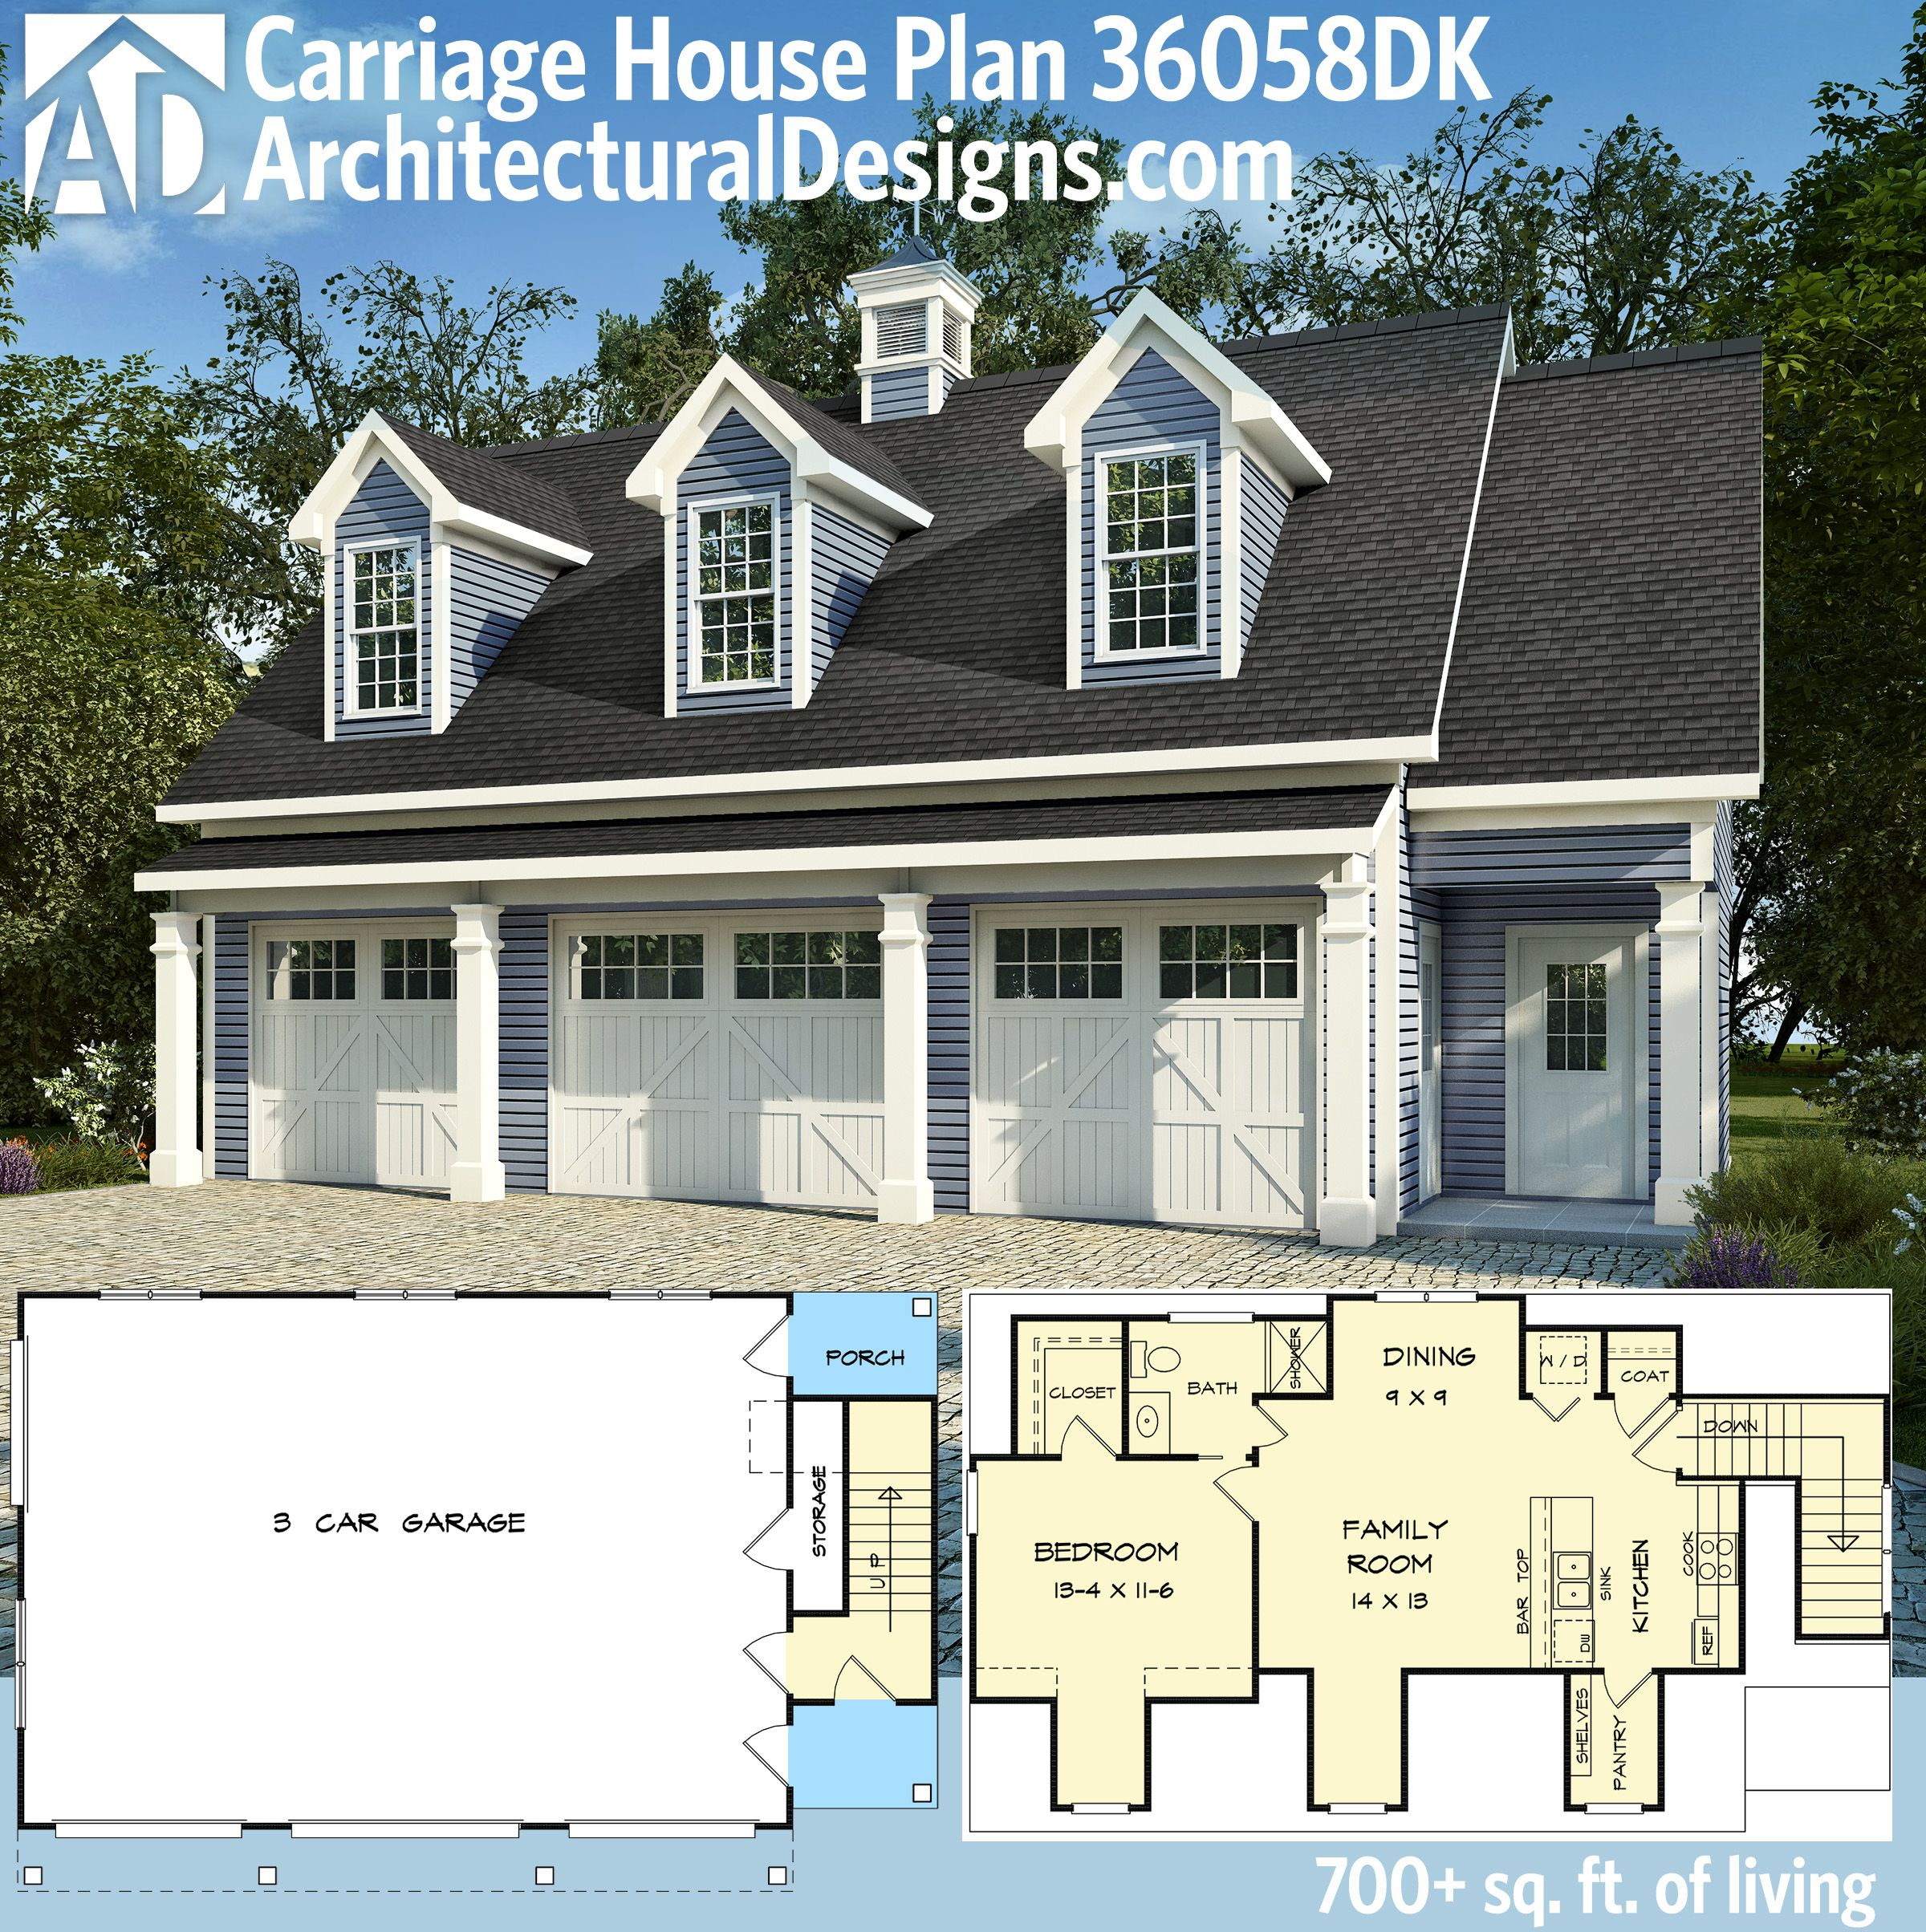 Plan 36058dk 3 car carriage house plan with 3 dormers Carriage house plans